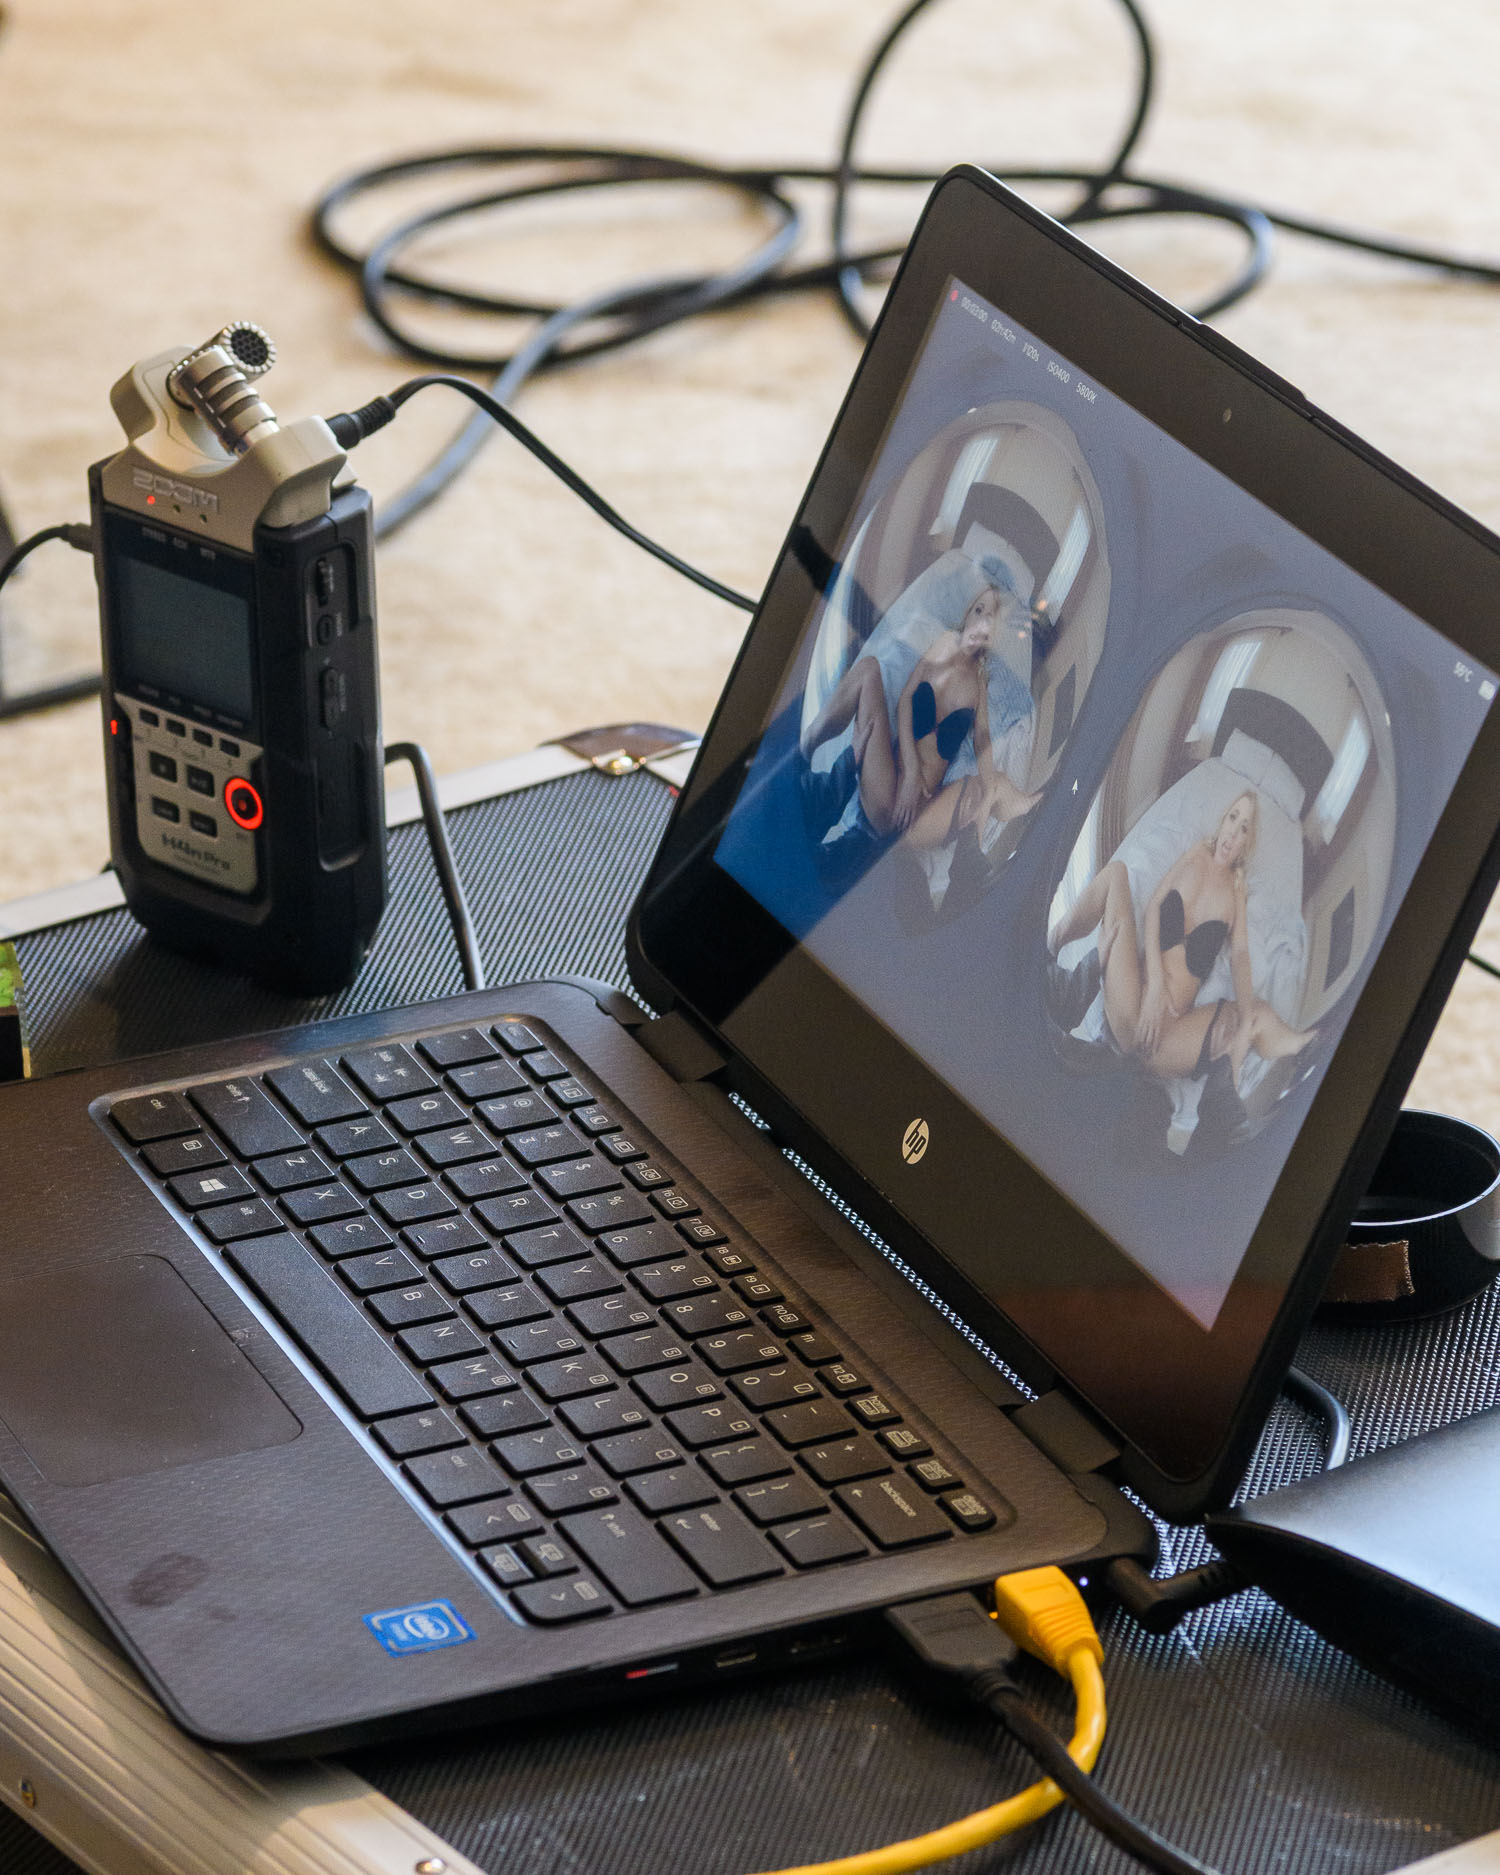 180 degree video from two cameras is previewed on a laptop on set.